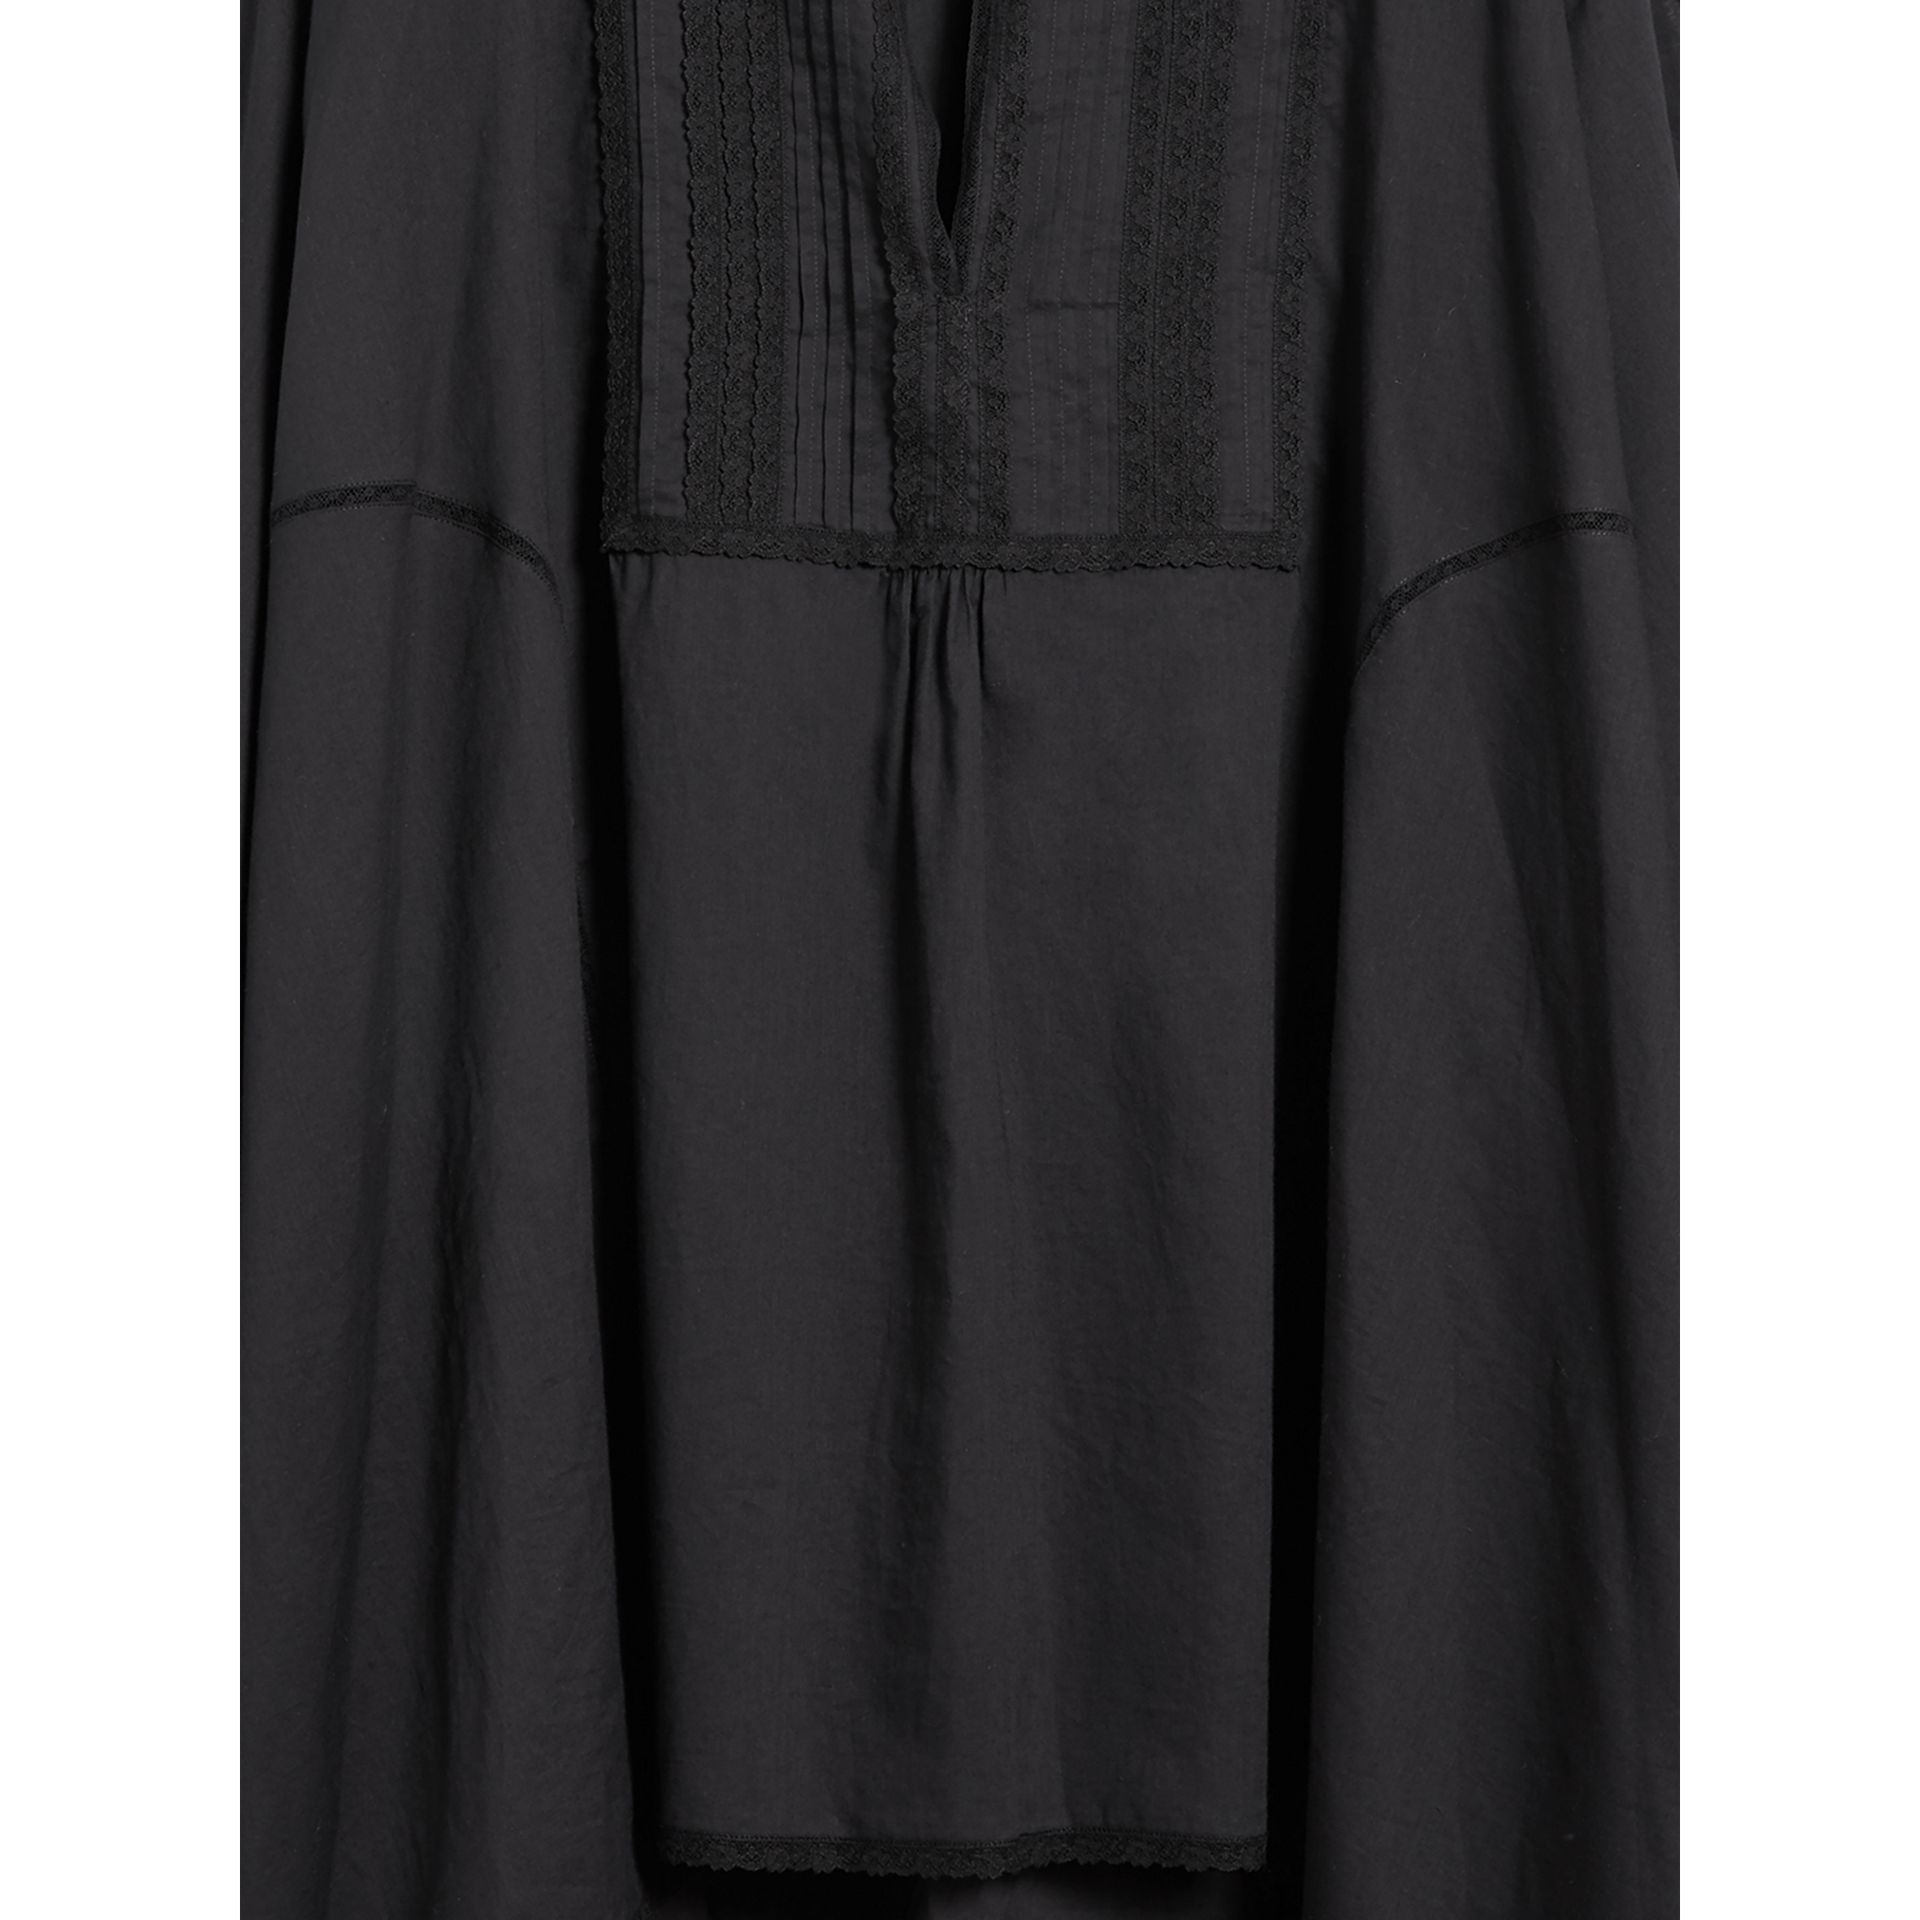 Lace Detail Cotton Kaftan in Black - Women | Burberry - gallery image 2